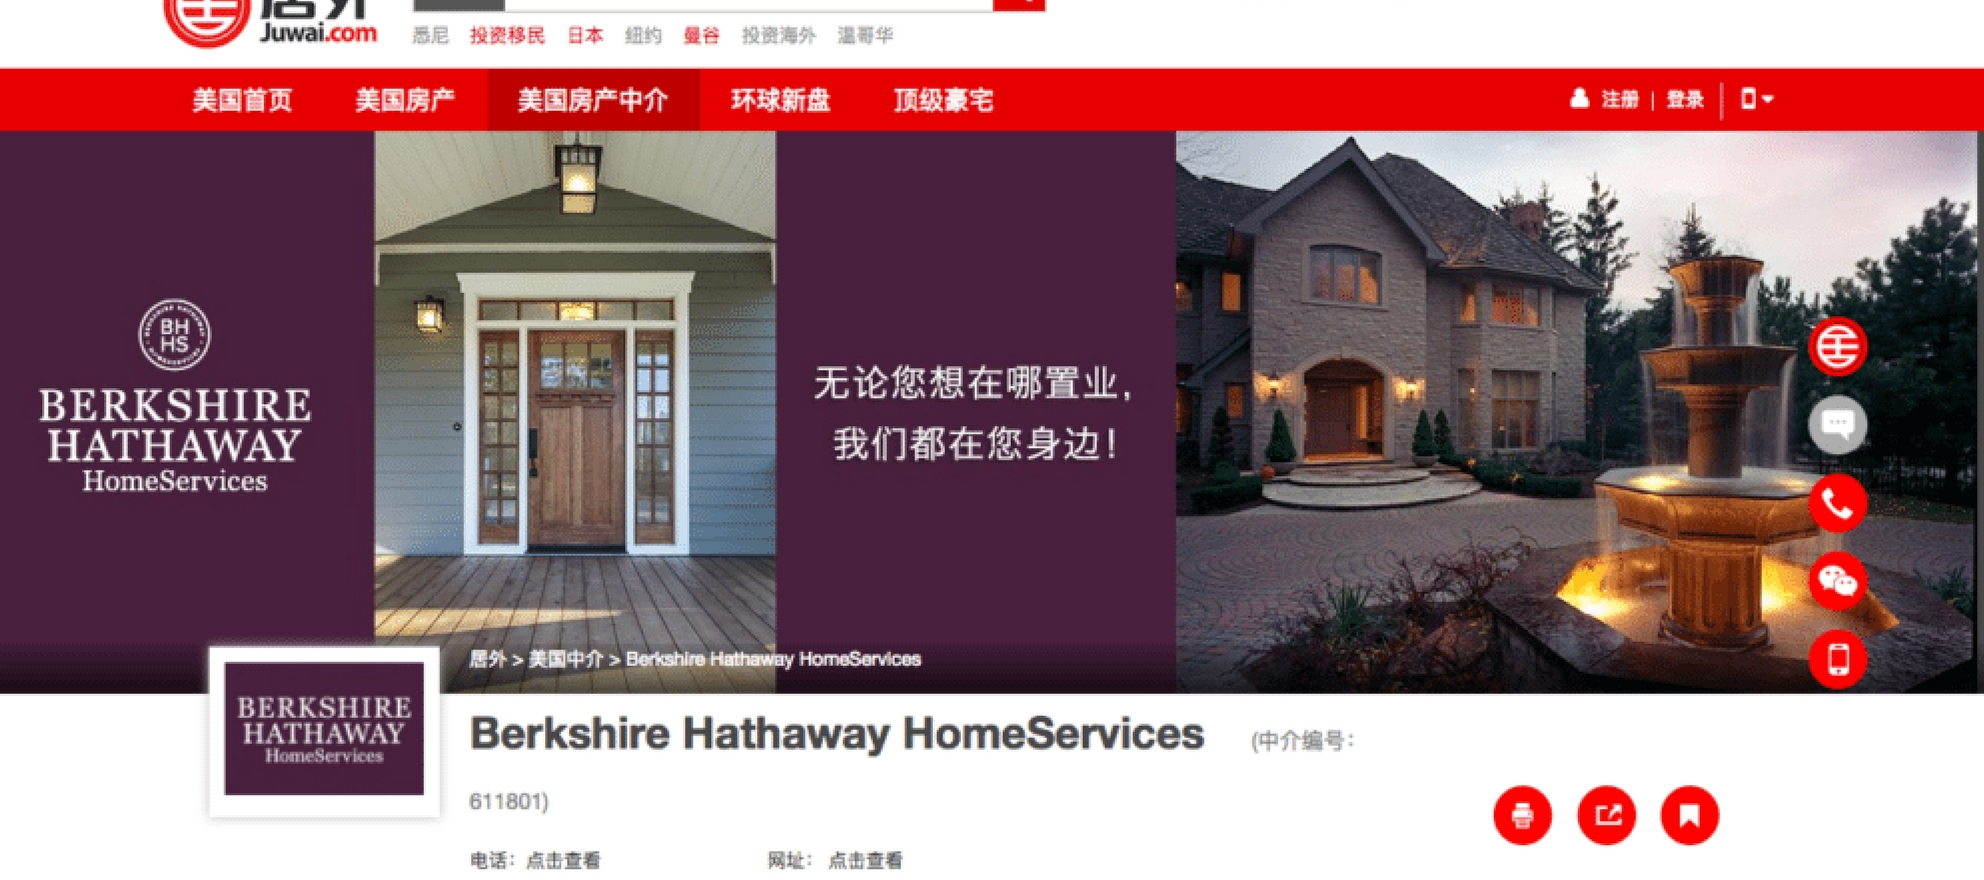 Berkshire Hathaway Homeservices To Target Chinese Buyers Via Juwai Com Inman